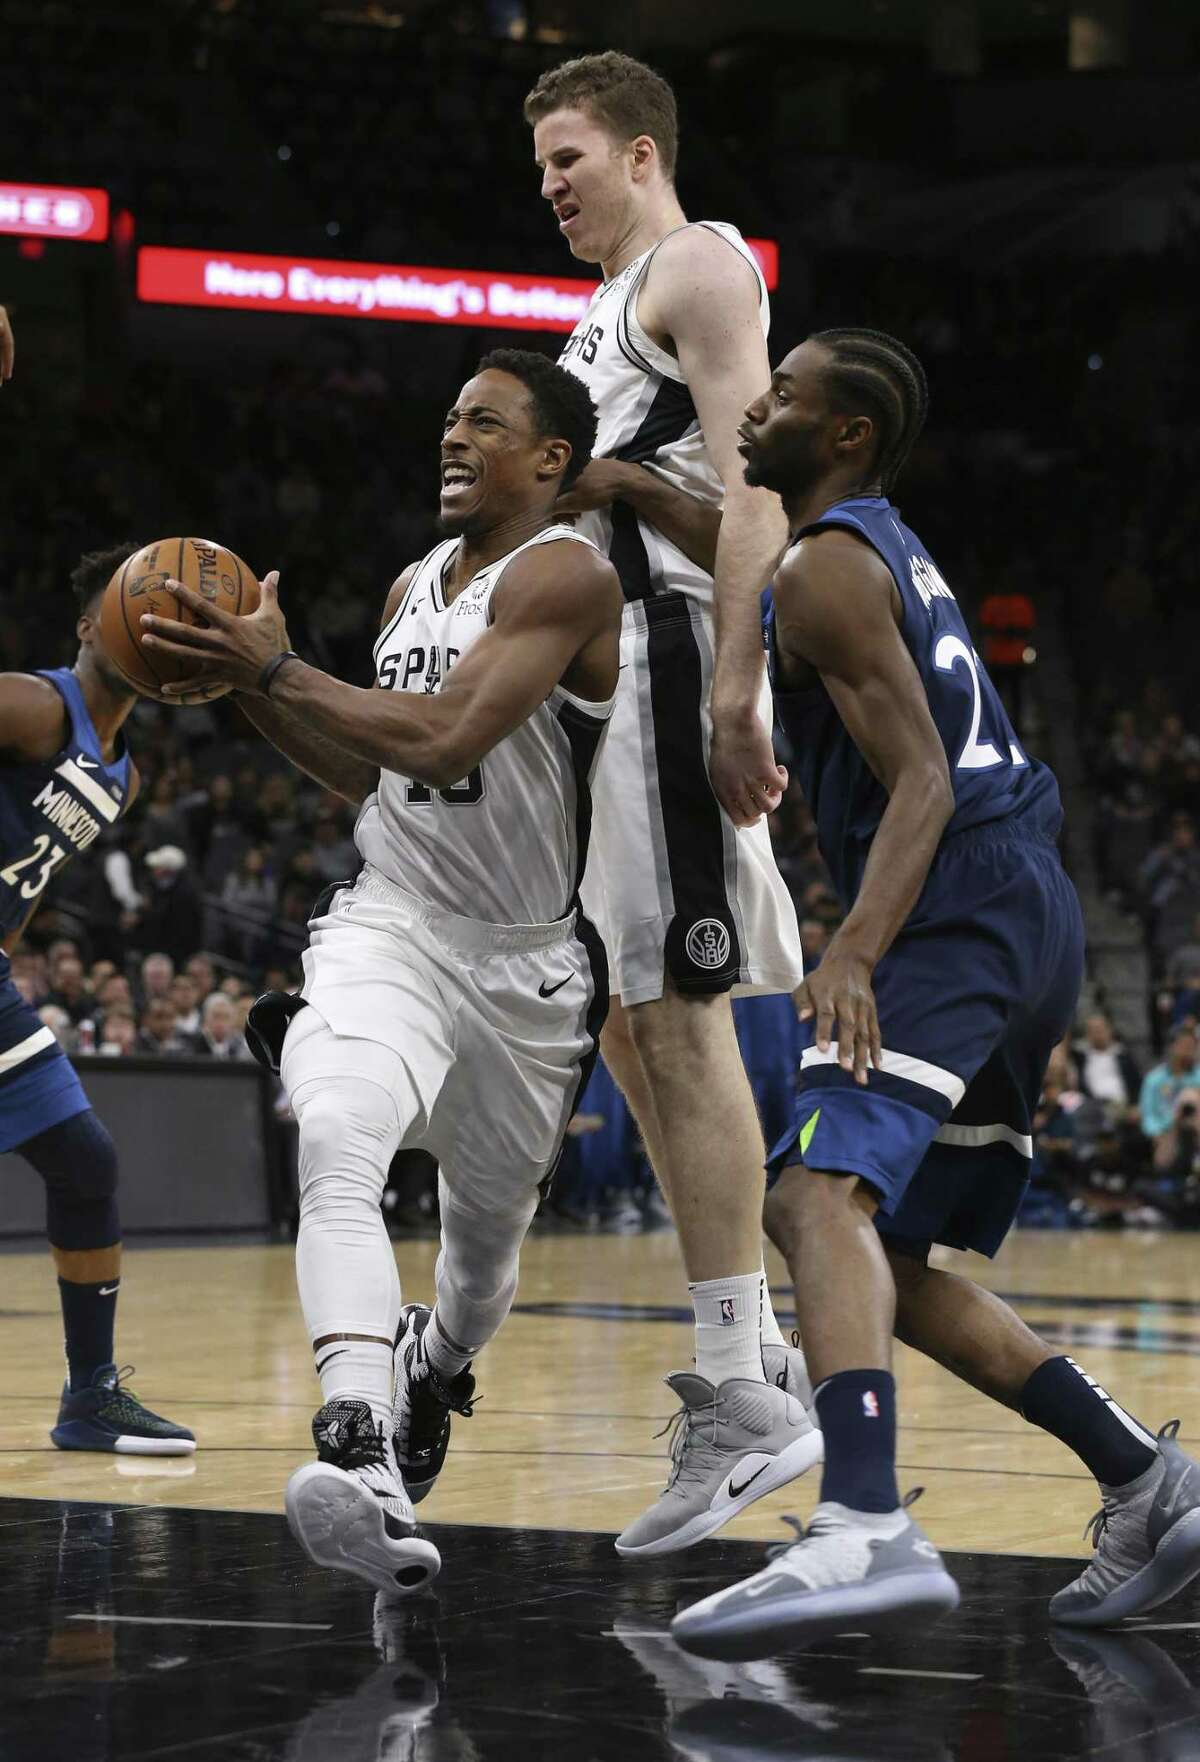 DeMar DeRozan, acquired this summer in the Kawhi Leonard trade, scored the final four points in the Spurs' 112-108 victory in Wednesday's season opener.